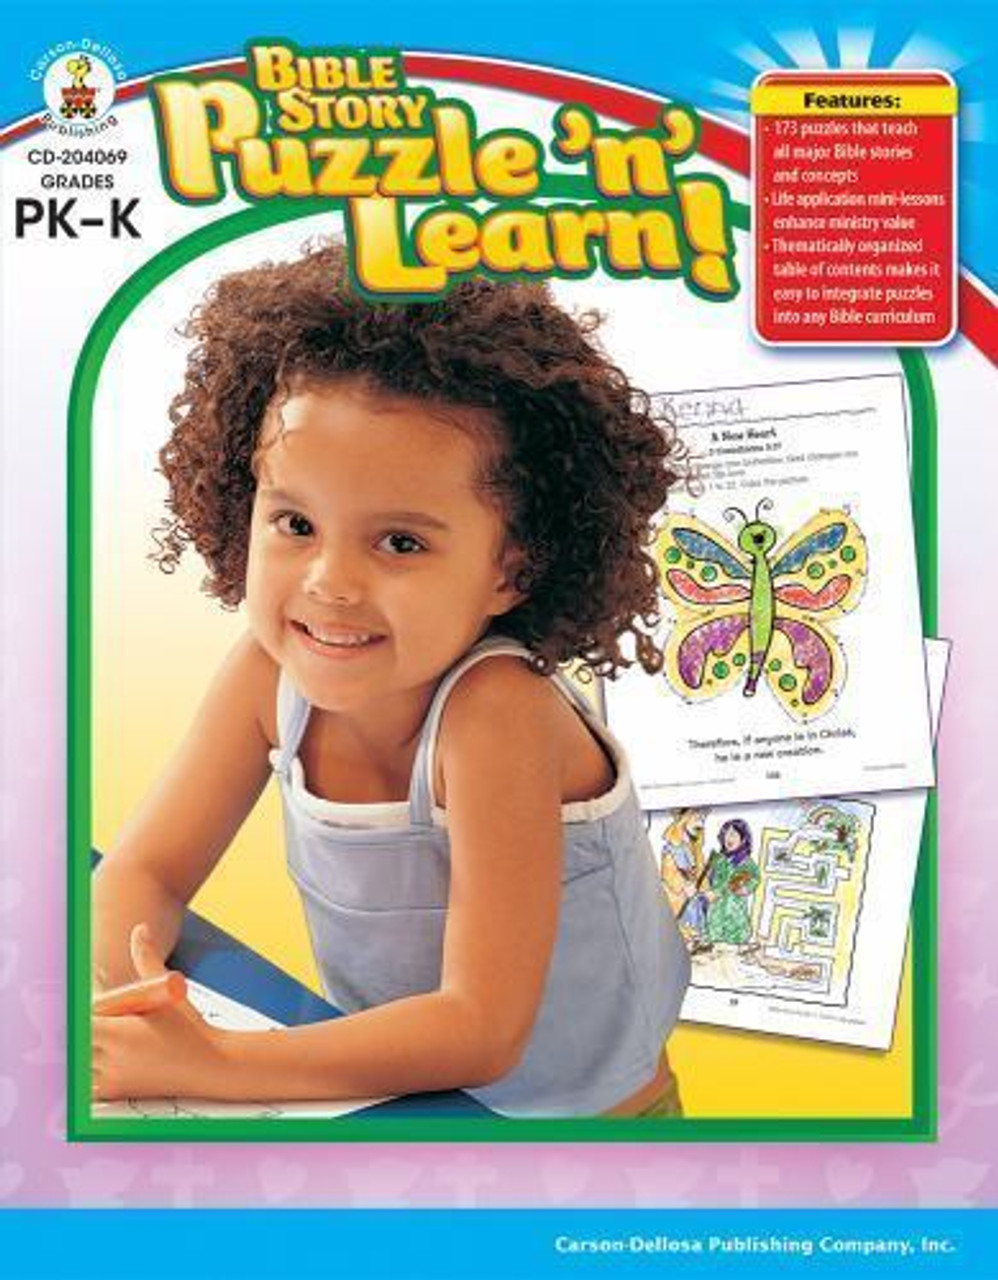 Bible Story Puzzle n Learn Grades PK-K